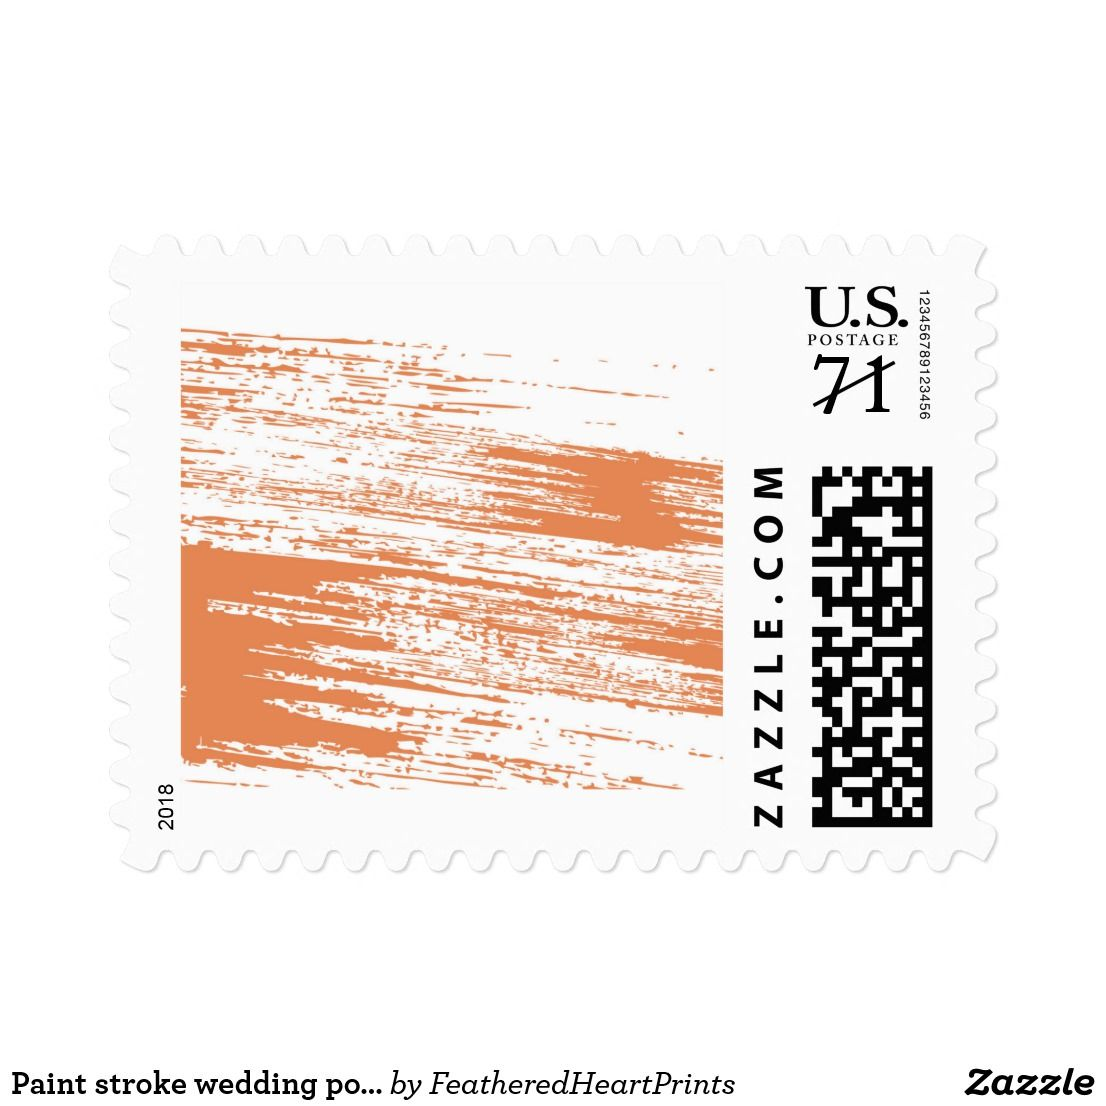 Paint stroke wedding postage stamp   Wedding postage stamps and ...